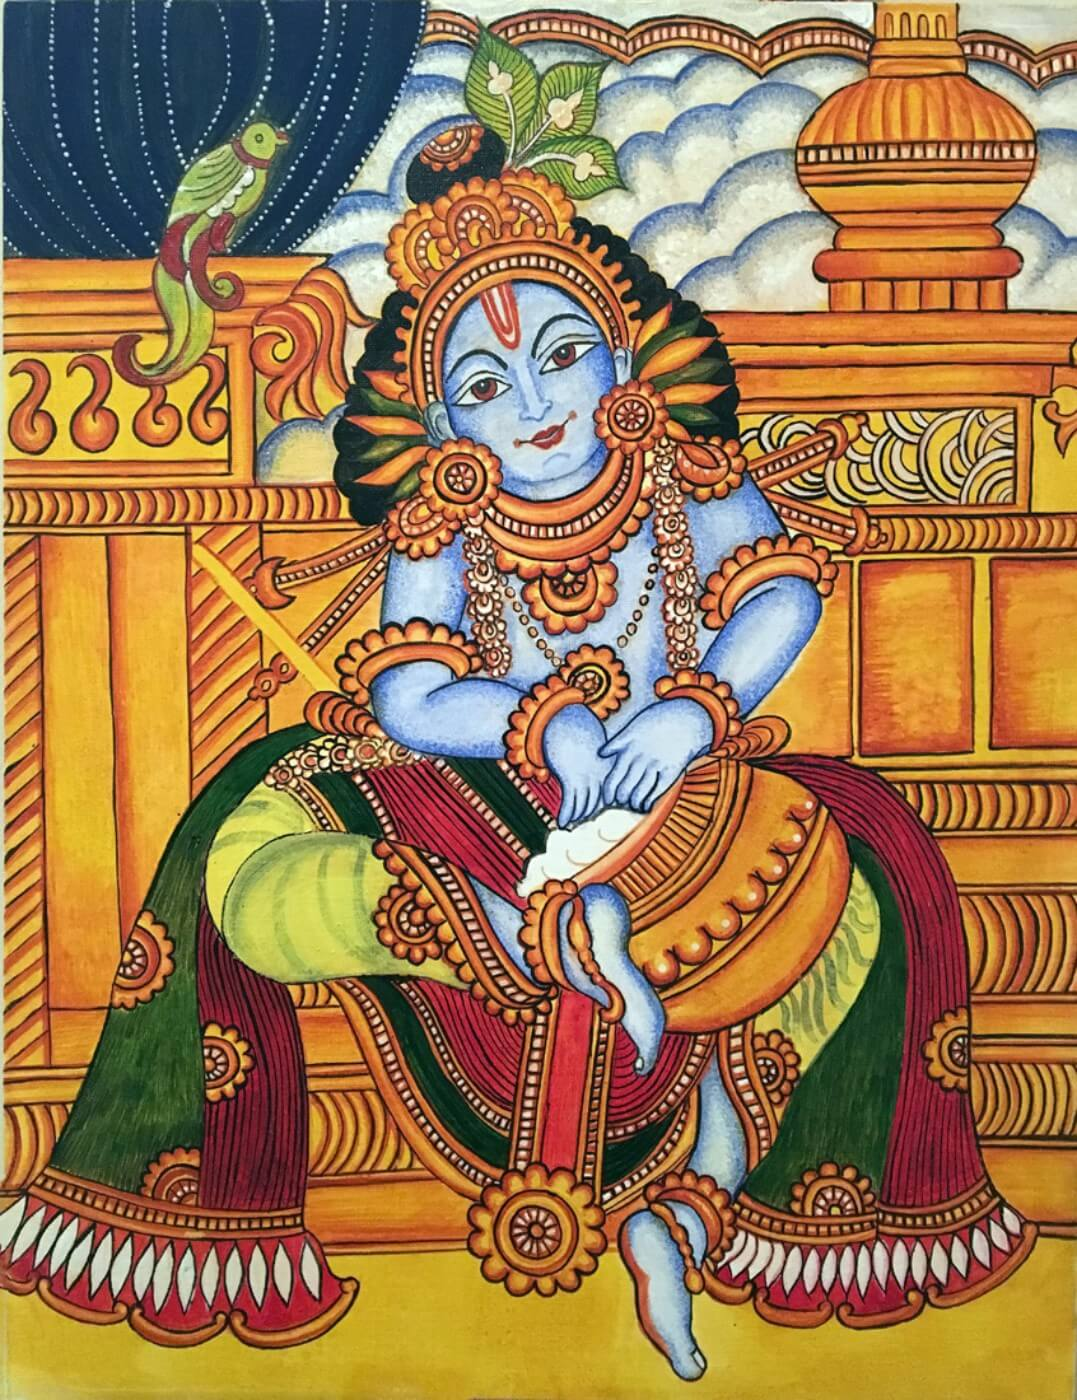 Krishna Paintings | Buy Posters, Frames, Canvas, Digital Art & Large Size Prints